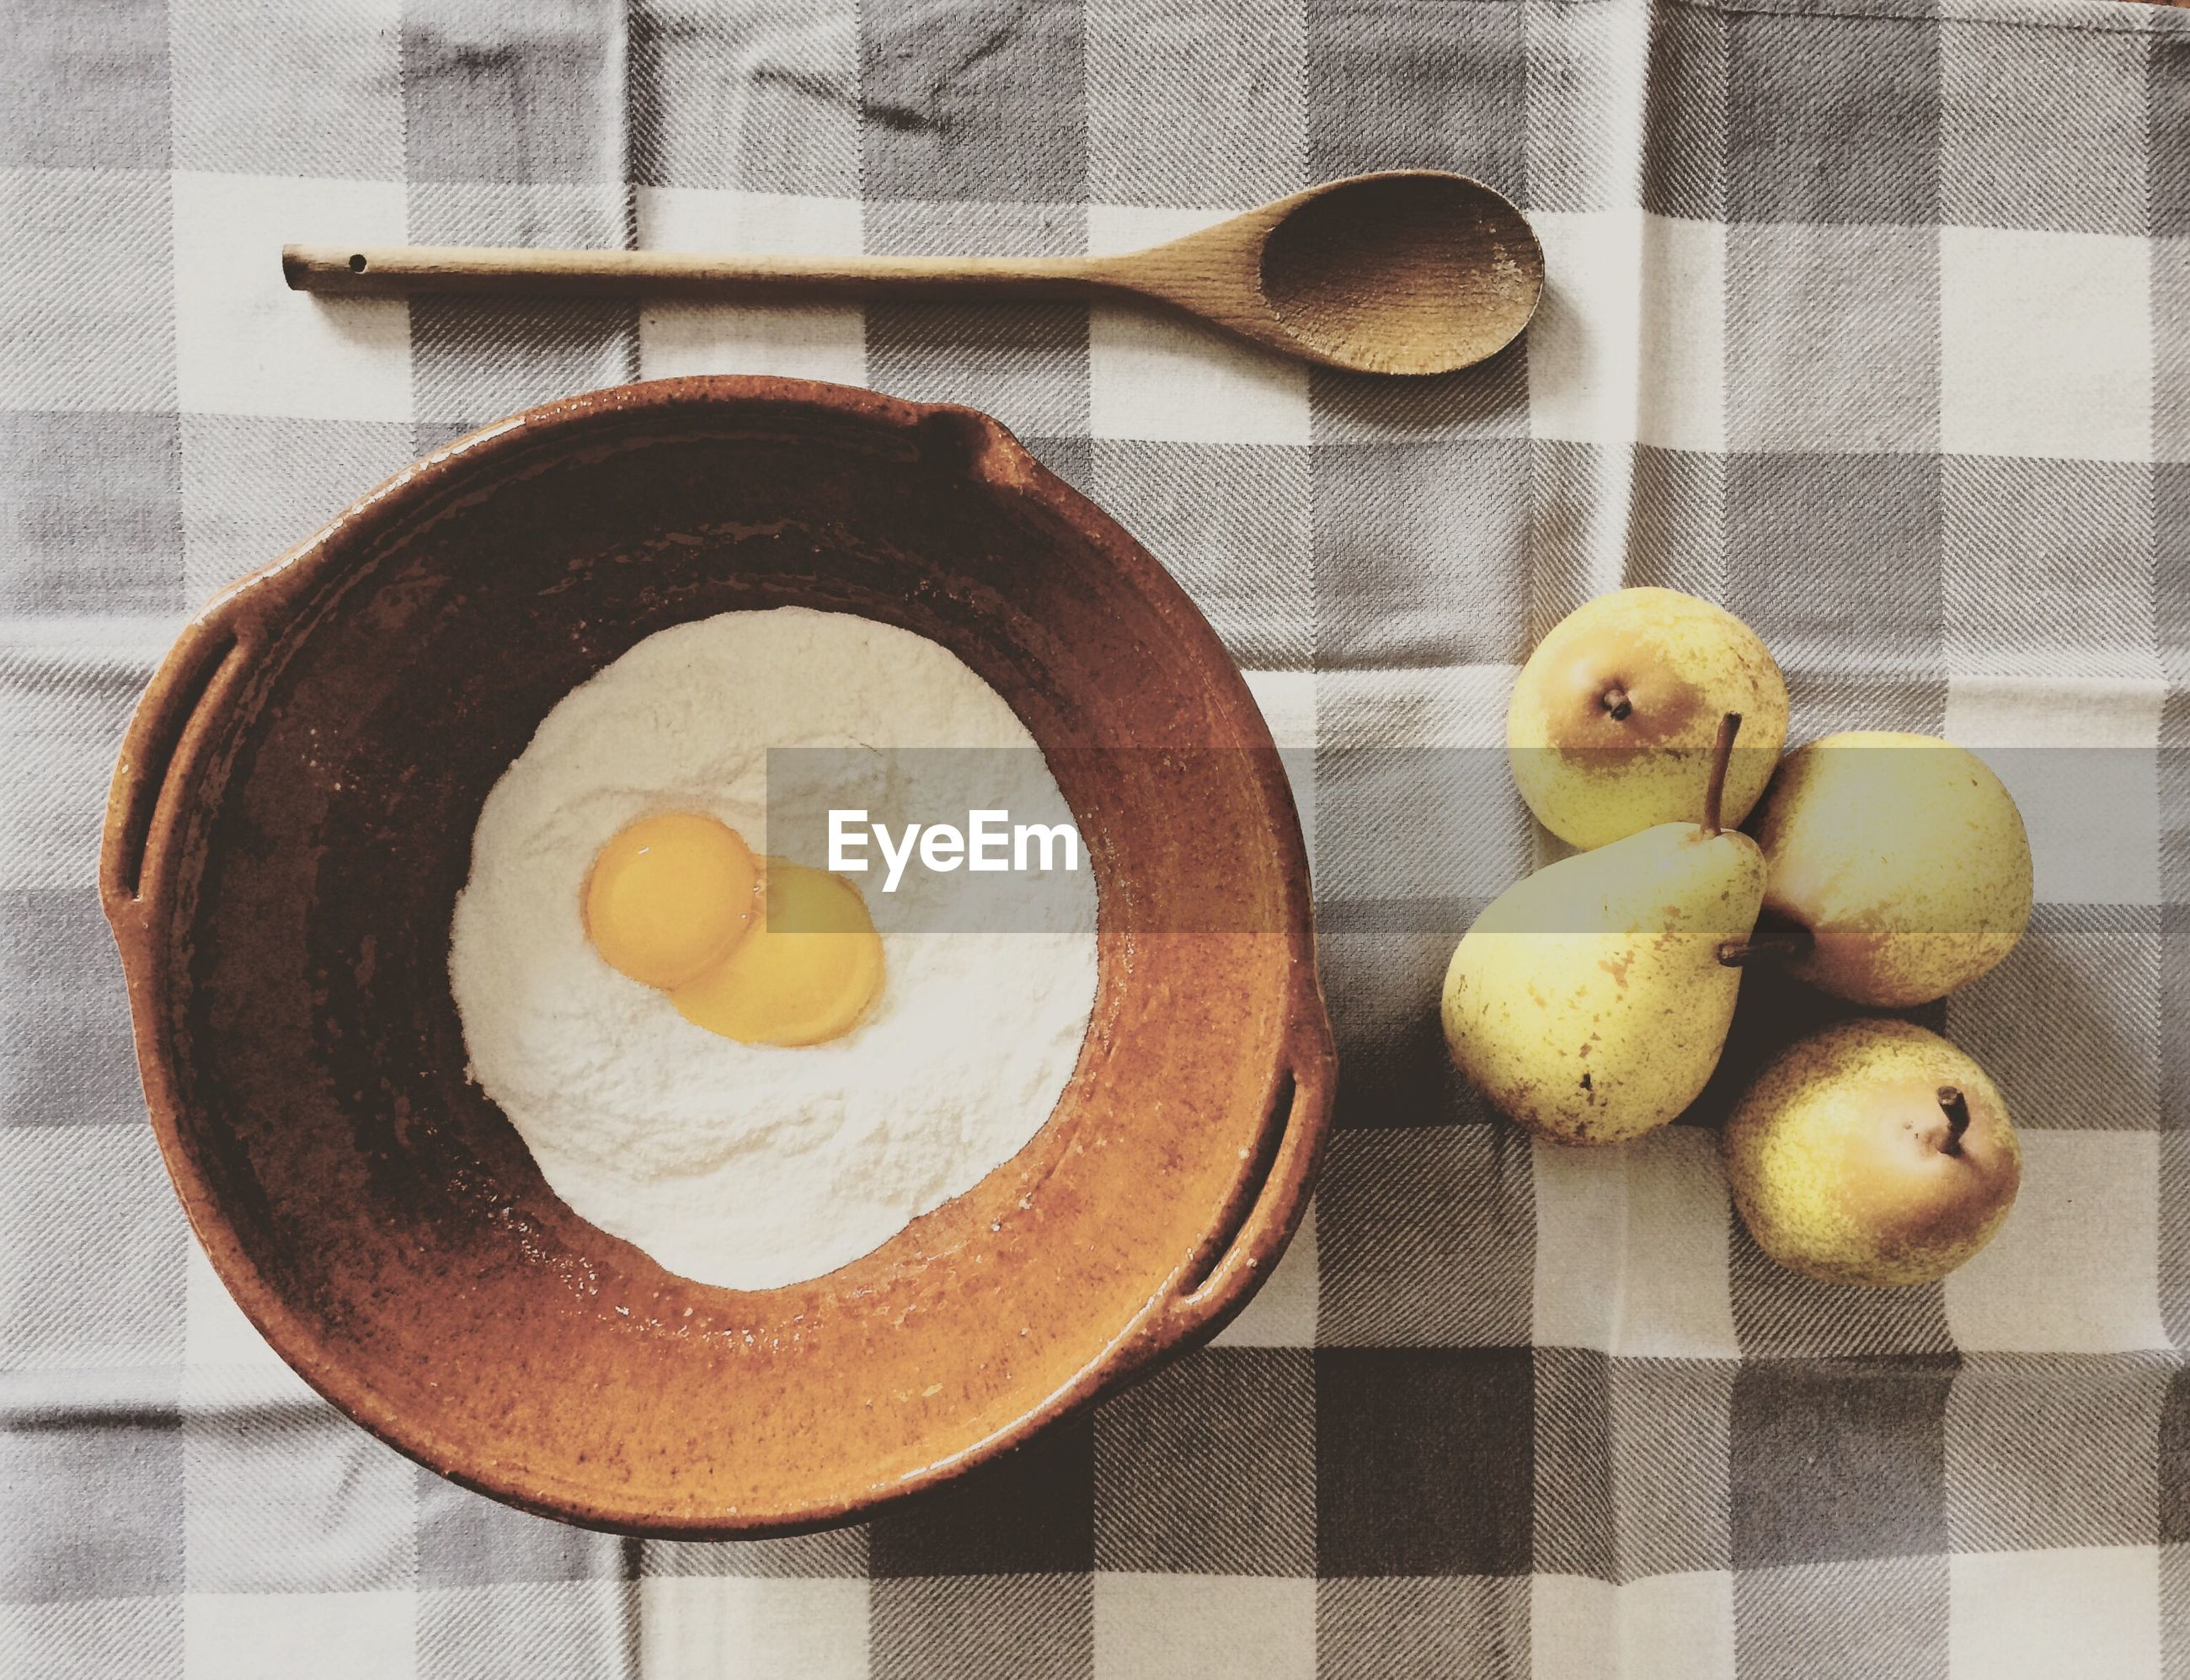 High angle view of egg and flour in container by pears on table